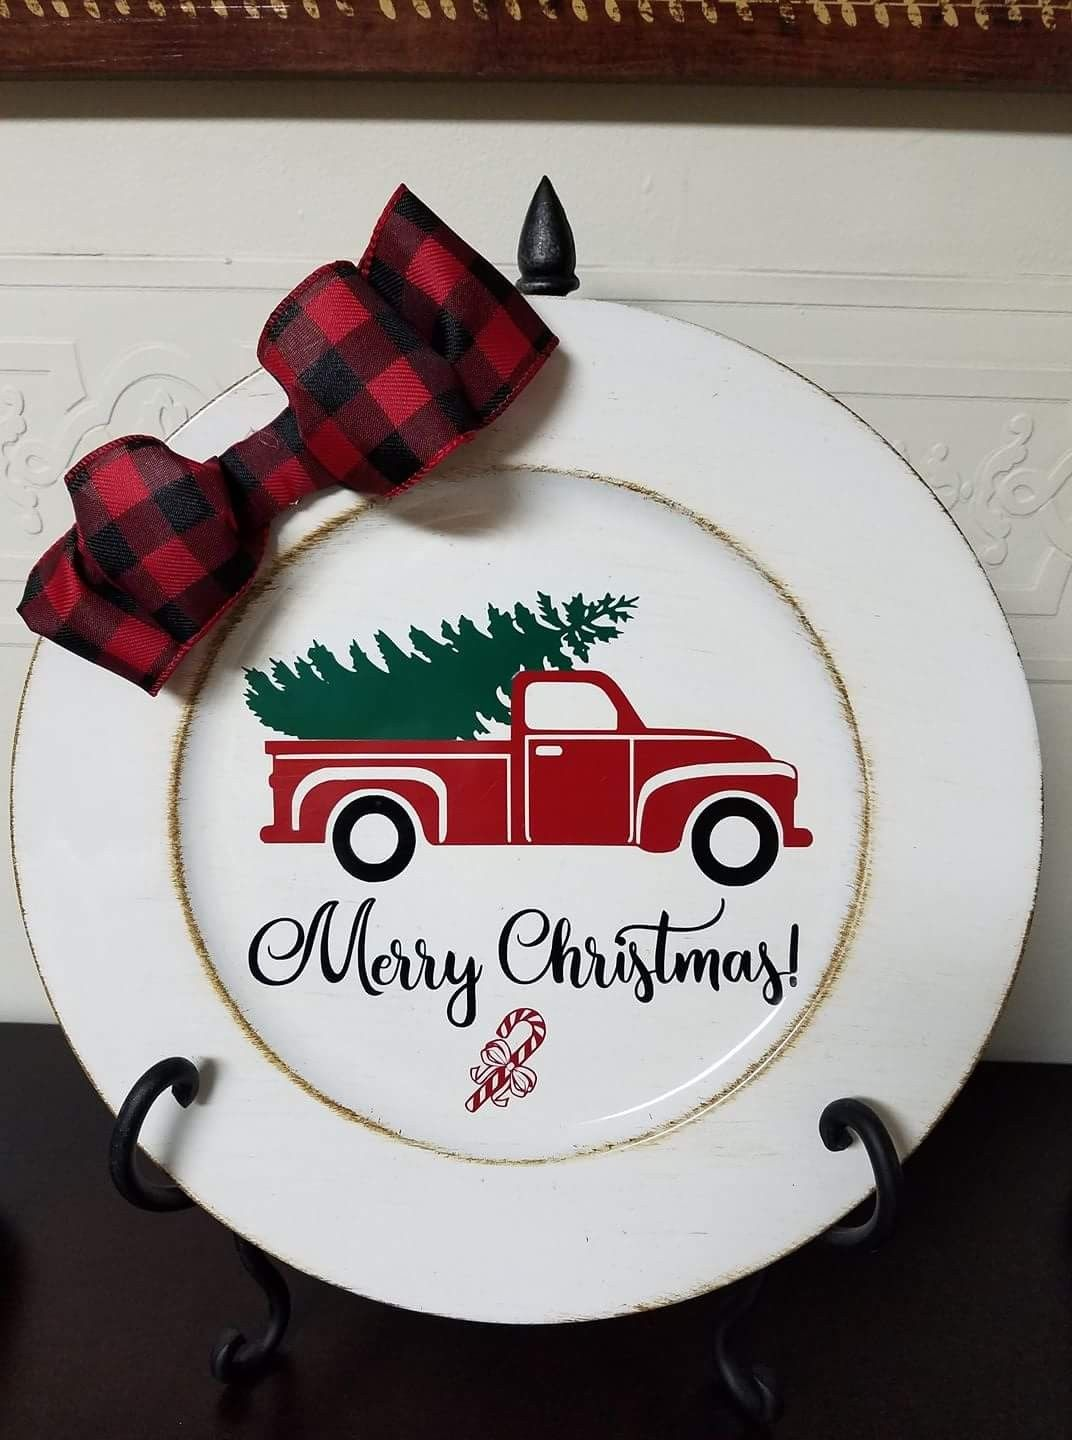 Skip the traditional plates and go with something a little more fun. Everywhere, and we mean everywhere, has some spruced up holiday plates this time of year. Seriously, even your local thrift store likely has a set that will spice up your table.   //source